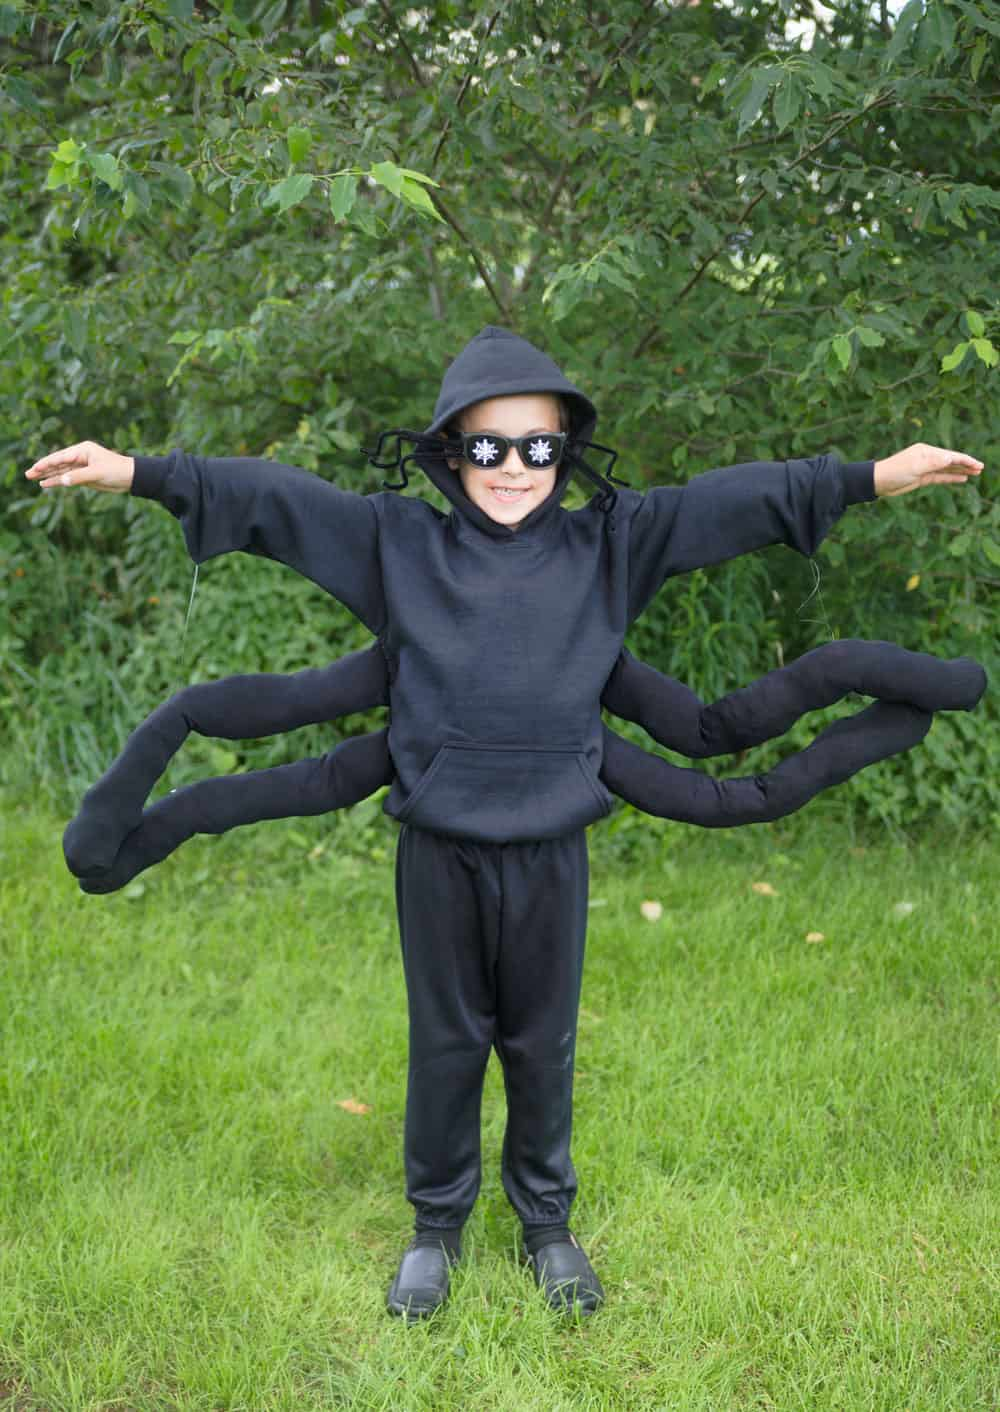 young boy in a spider costume against green grass and green trees